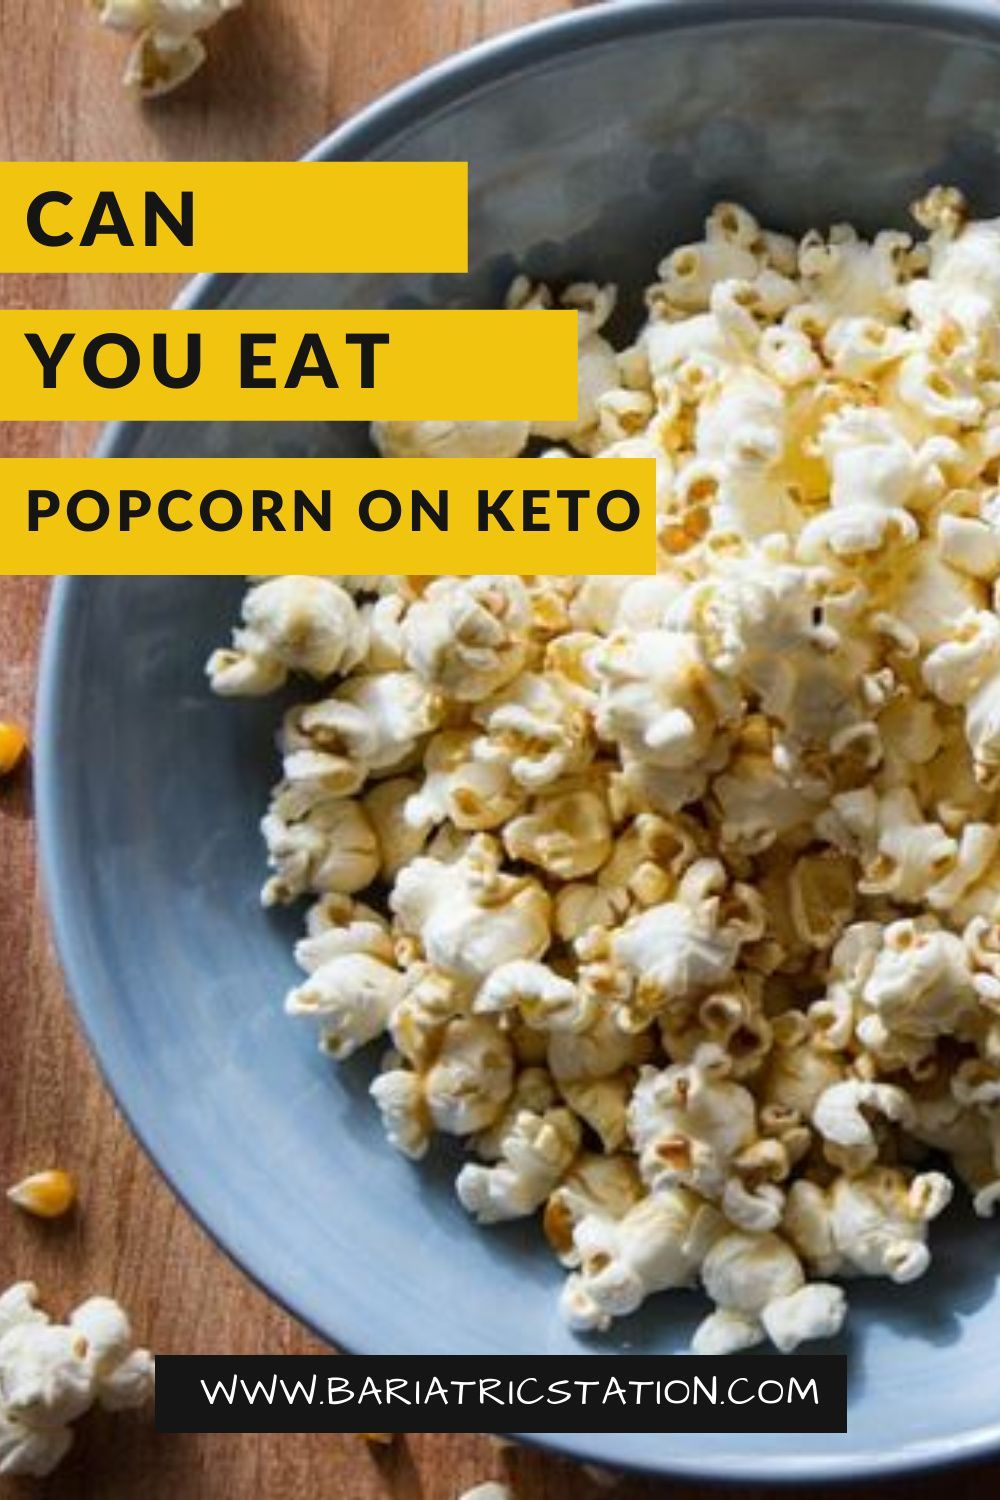 Can You Eat Popcorn On Keto Eat High Carb Snacks Low Carb Keto Recipes